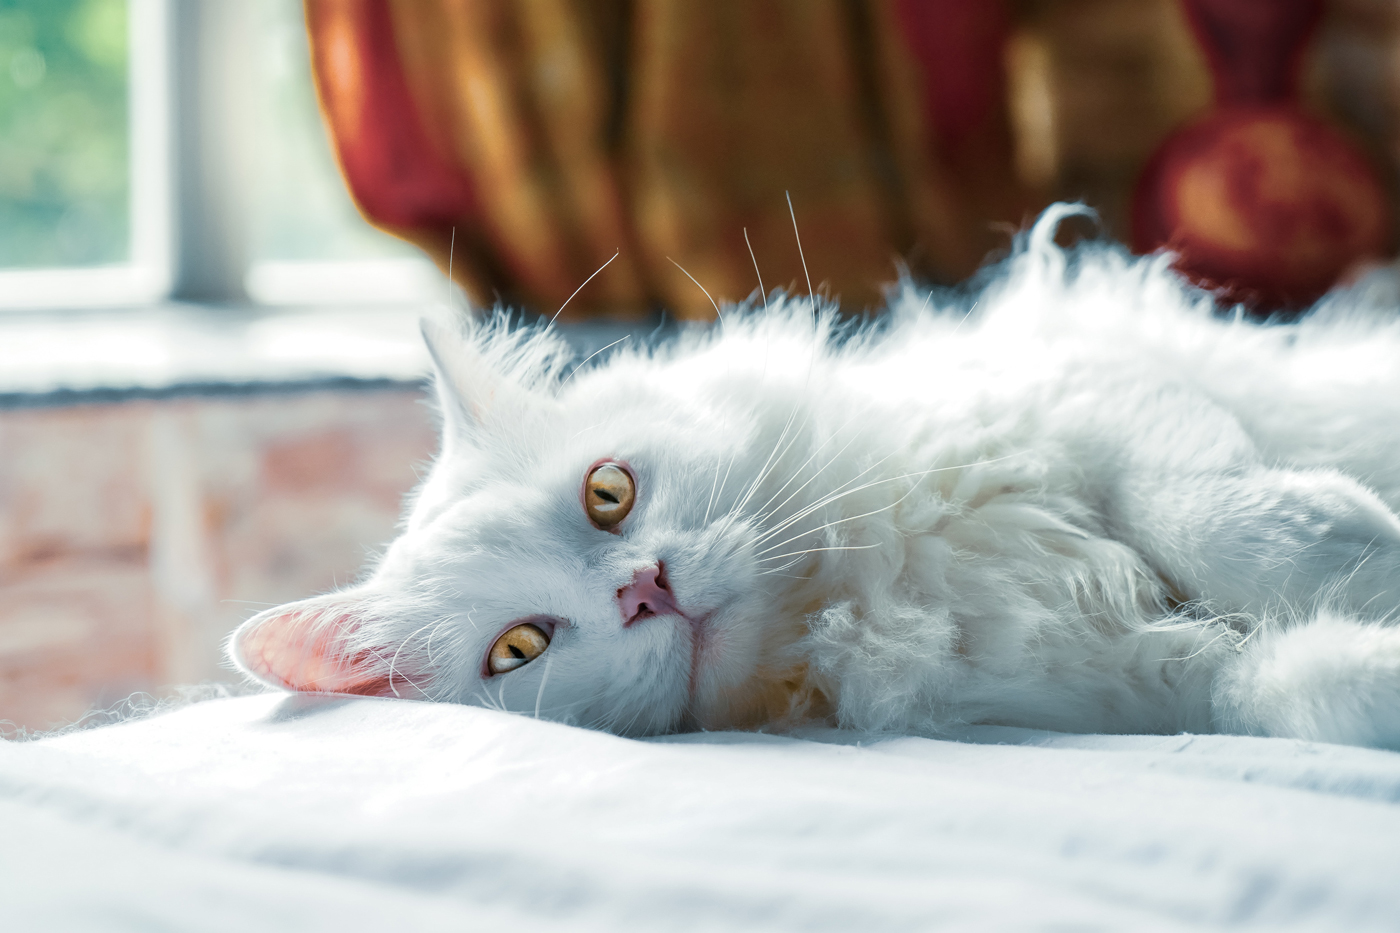 A fluffy white cat relaxing on a bed